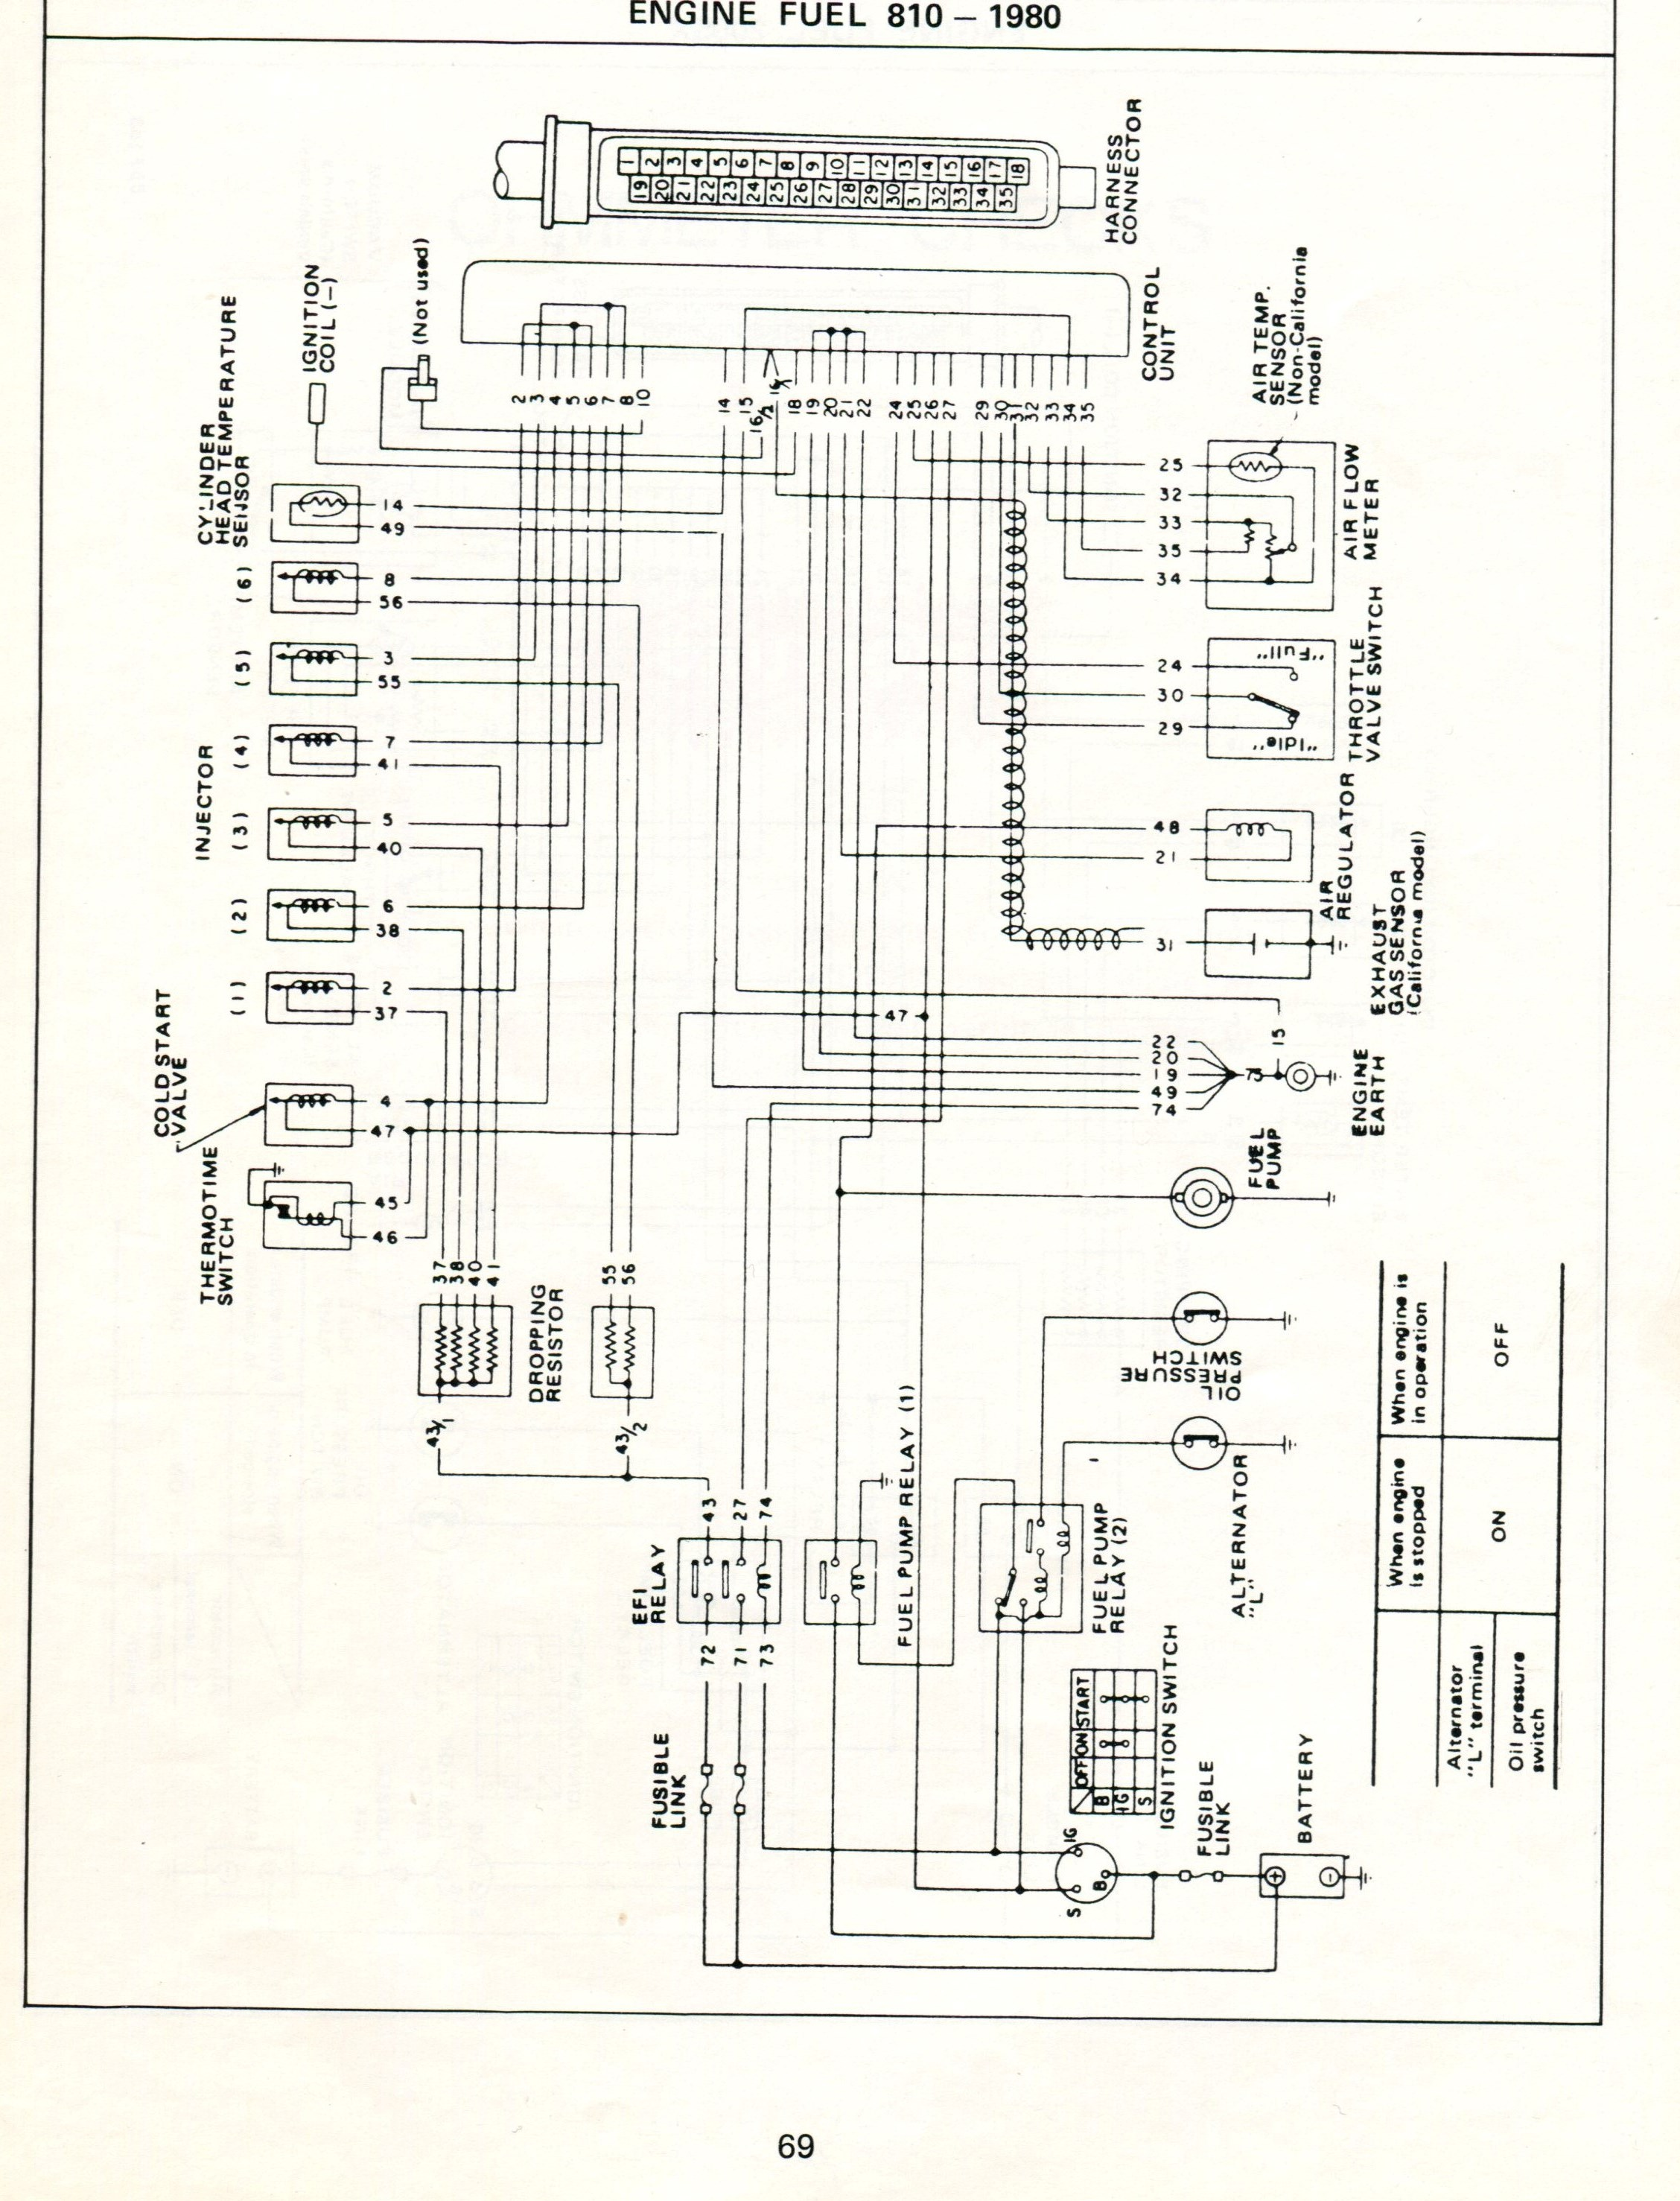 small resolution of wiring diagram for 280z v8 wiring diagram 280z engine diagram nissan patrol 4 2 wiring diagram